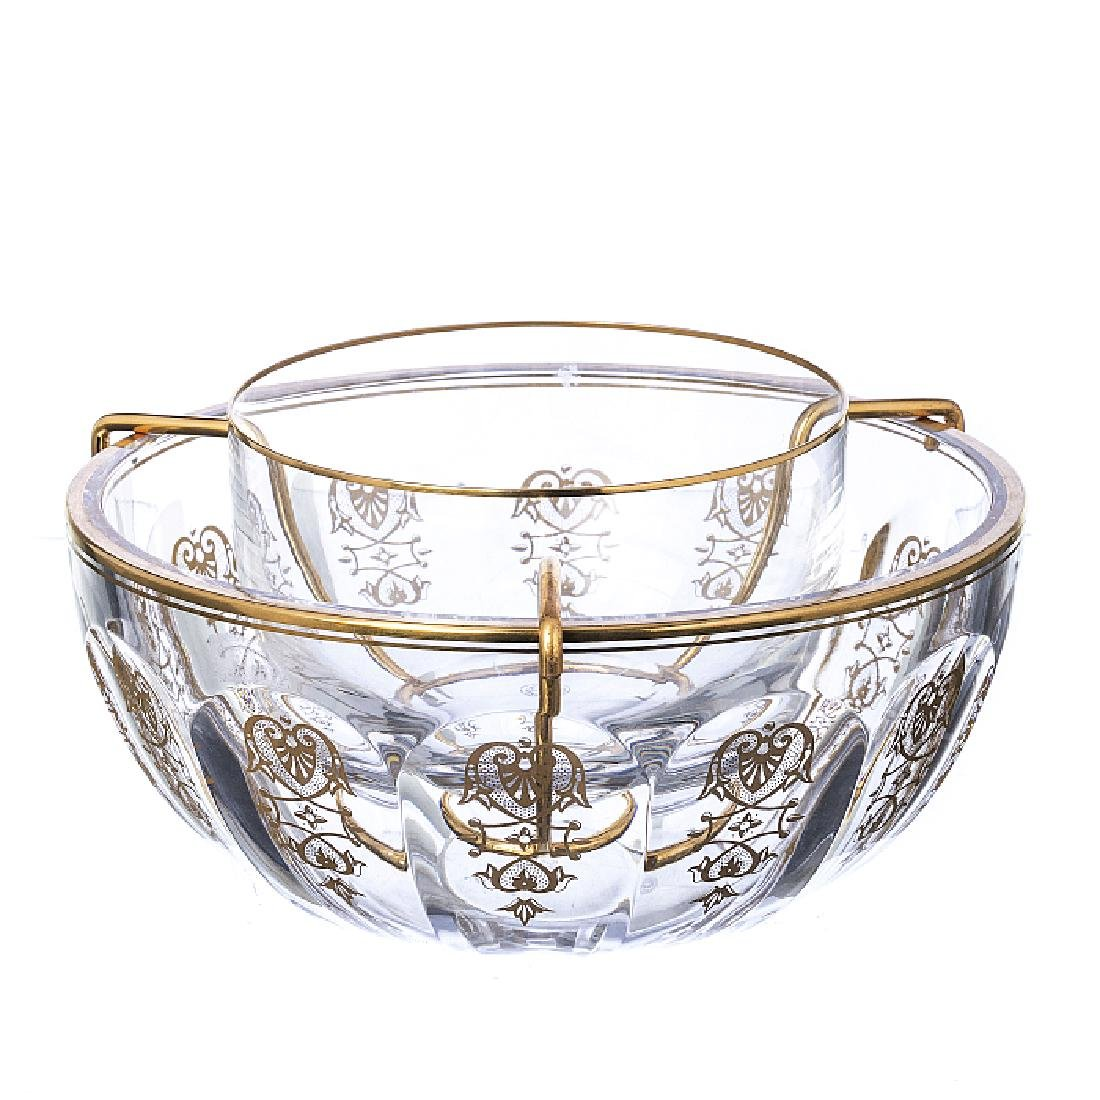 BACCARAT - Bowl in crystal